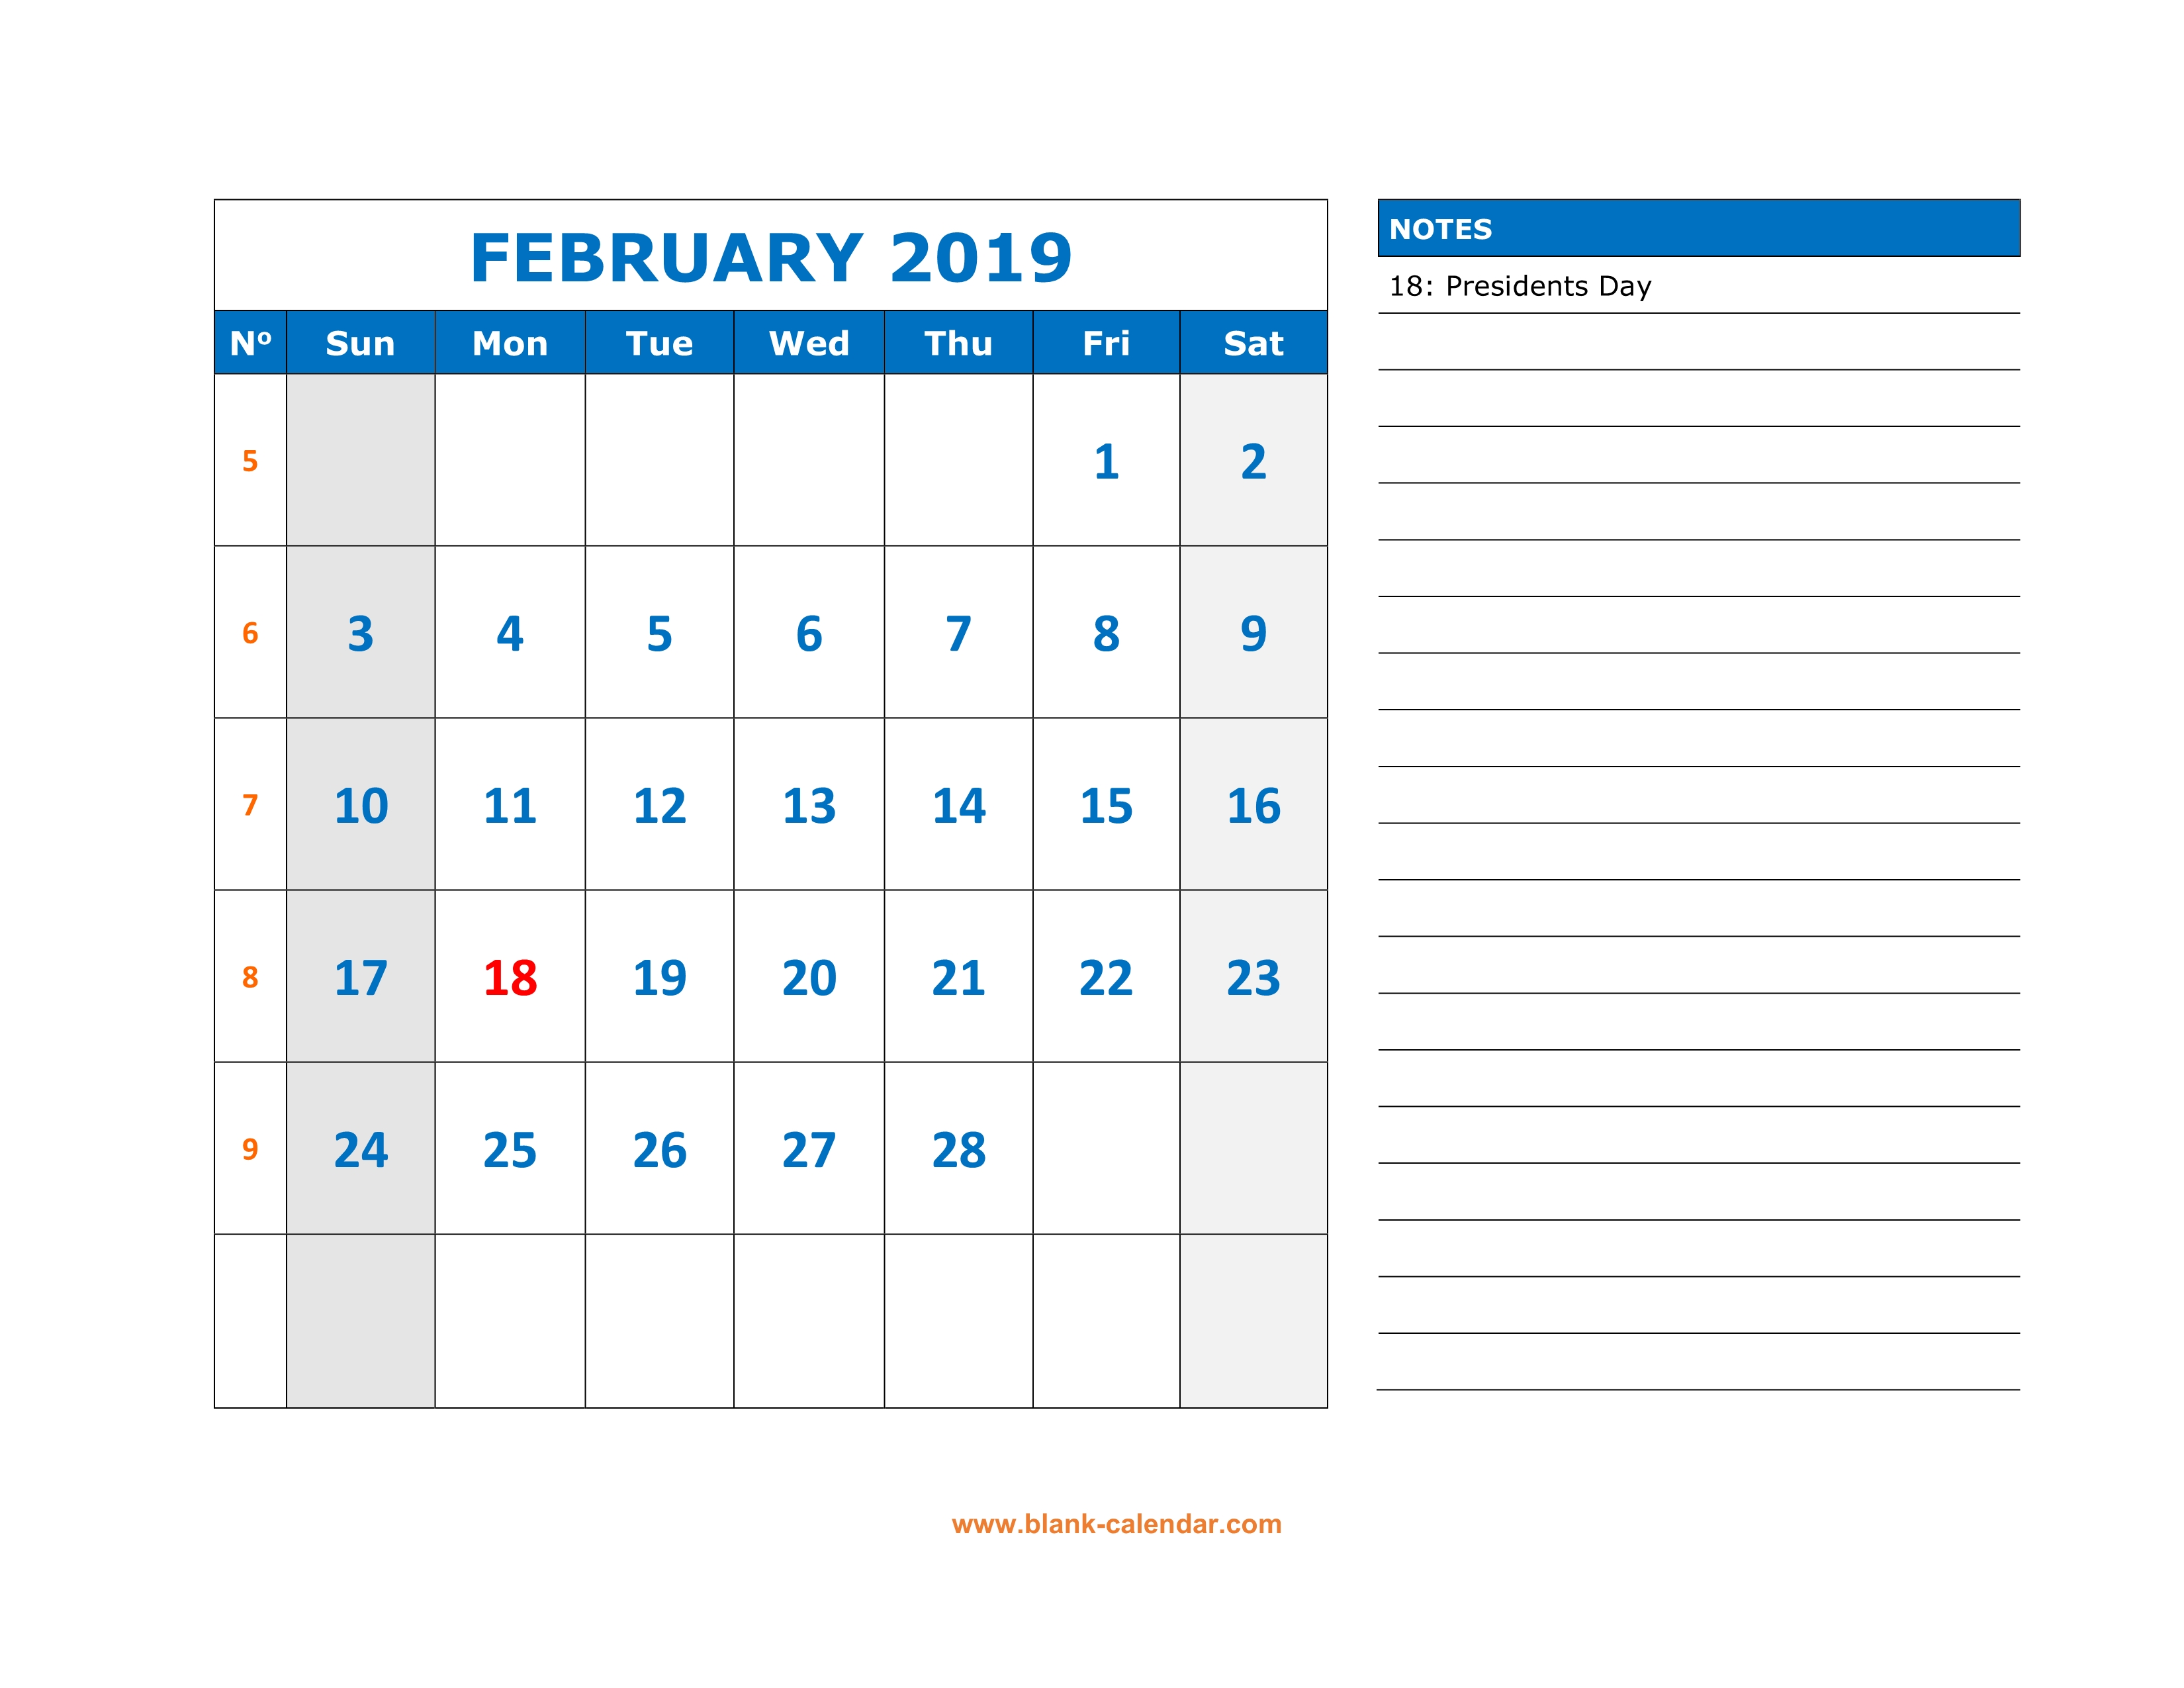 Free February 2019 Calendar Large Spaces Free Download Printable February 2019 Calendar, large space for